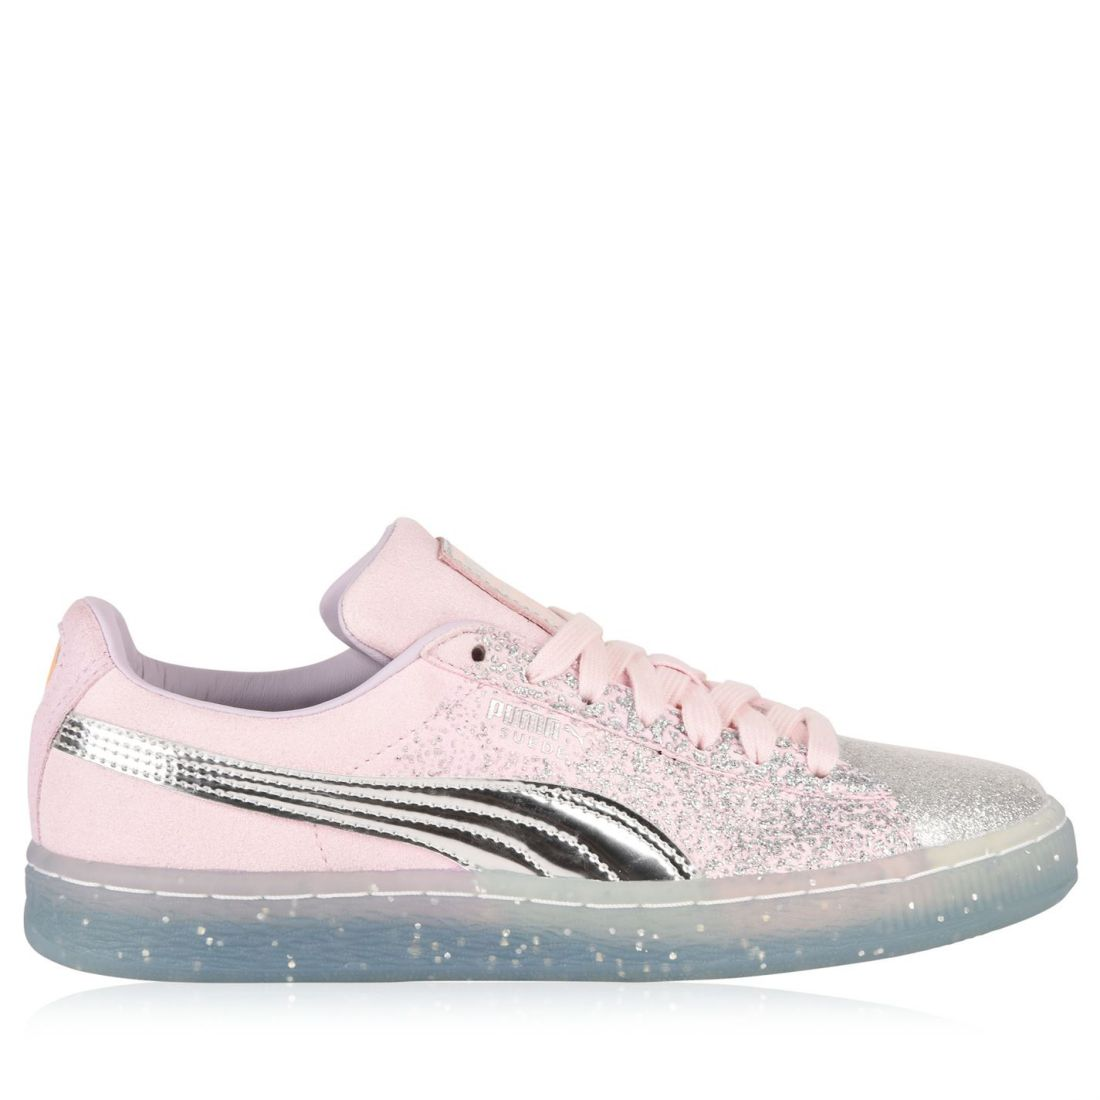 9004ec1b210d Puma X Sophia Webster Womens Suede Trainers Lace Up Rounded Toe ...